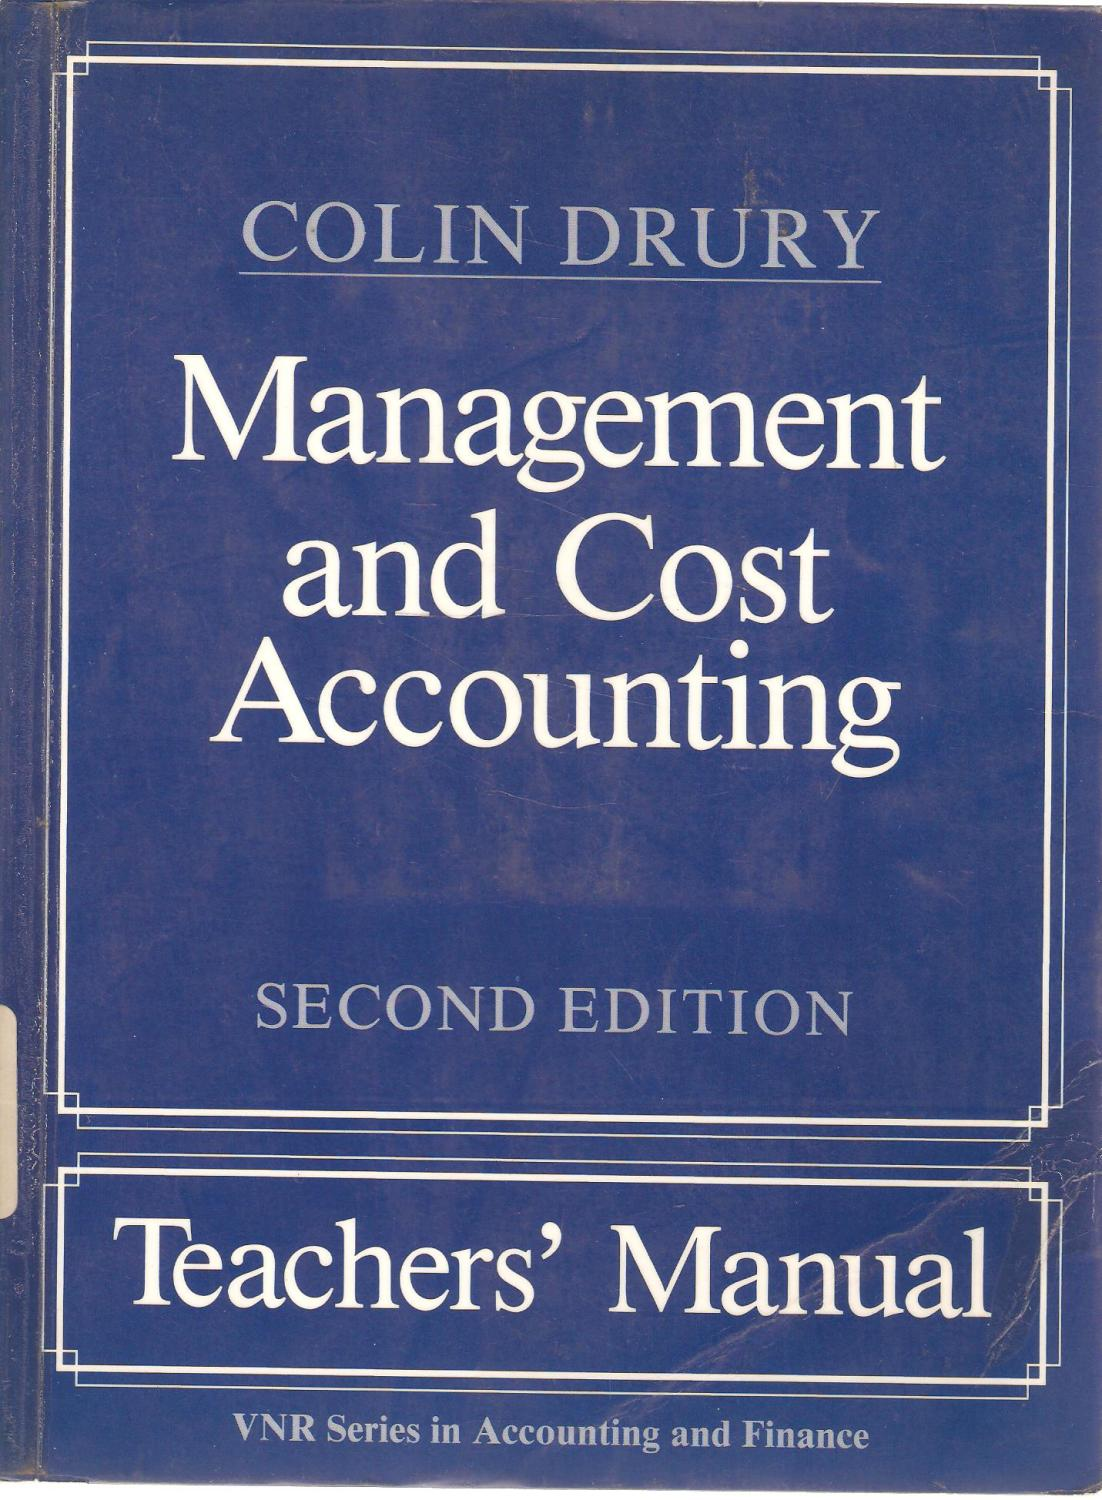 colin drury management and cost accounting airport complex Management and cost accounting 8th edition by colin drury answers to questions full chapters are included available files : solution manual instructor manual.